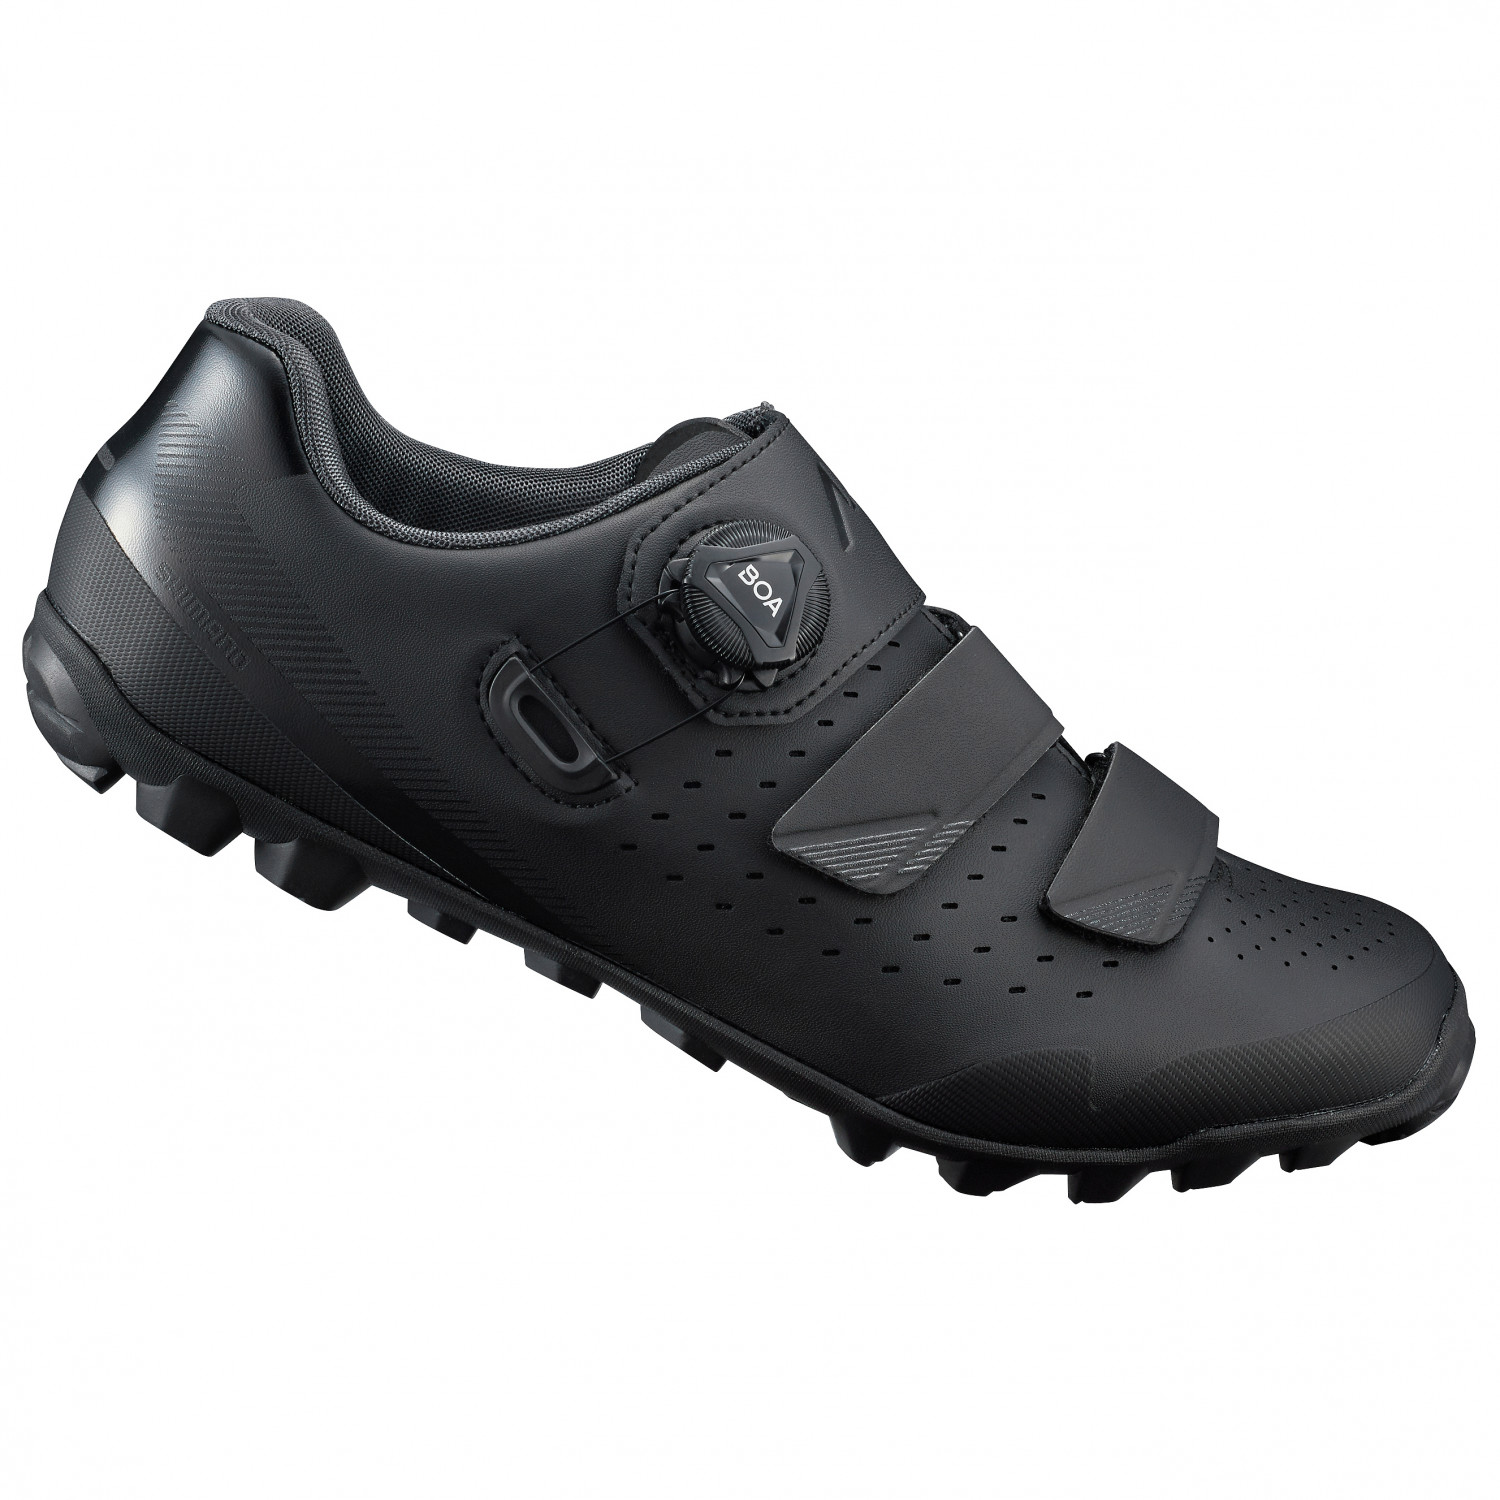 45ed64e37d7 Shimano Fahrradschuhe SH-ME4 - Cycling Shoes Men's | Free UK ...